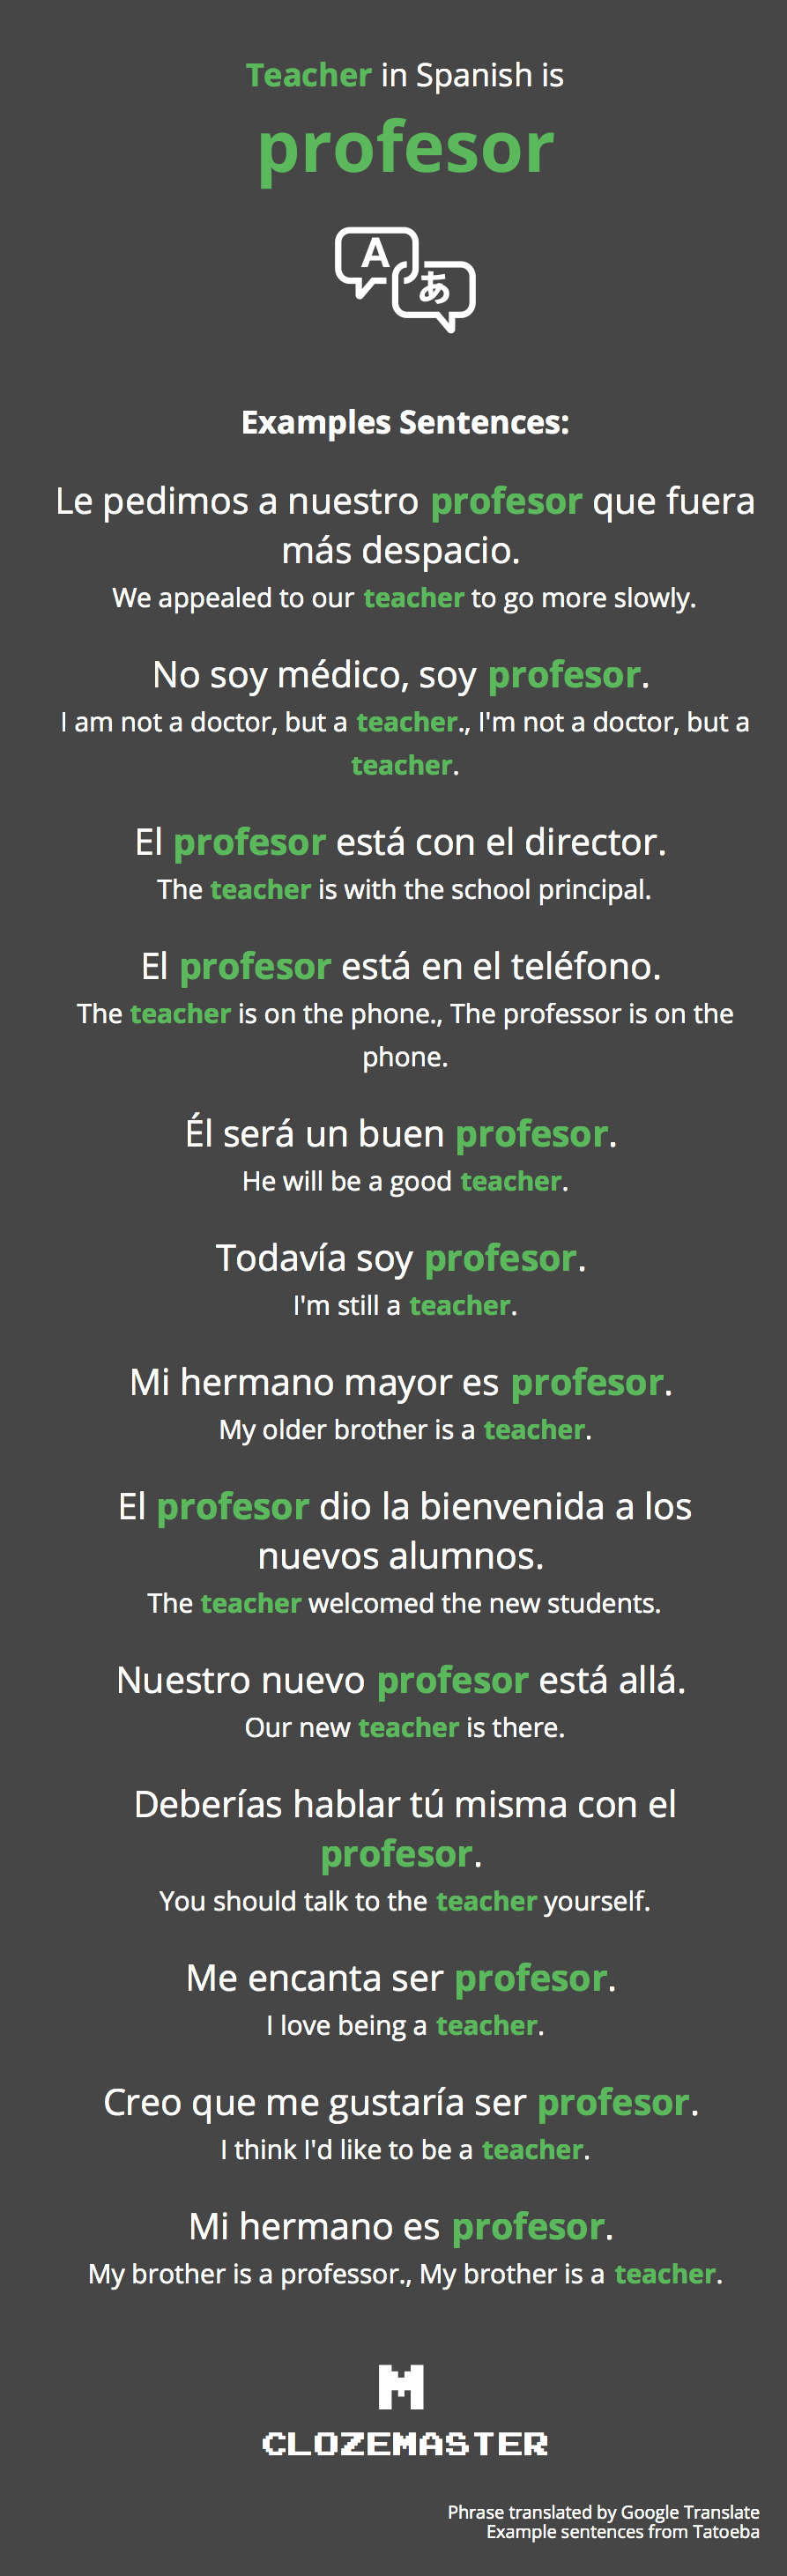 How to Say Teacher in Spanish - Clozemaster